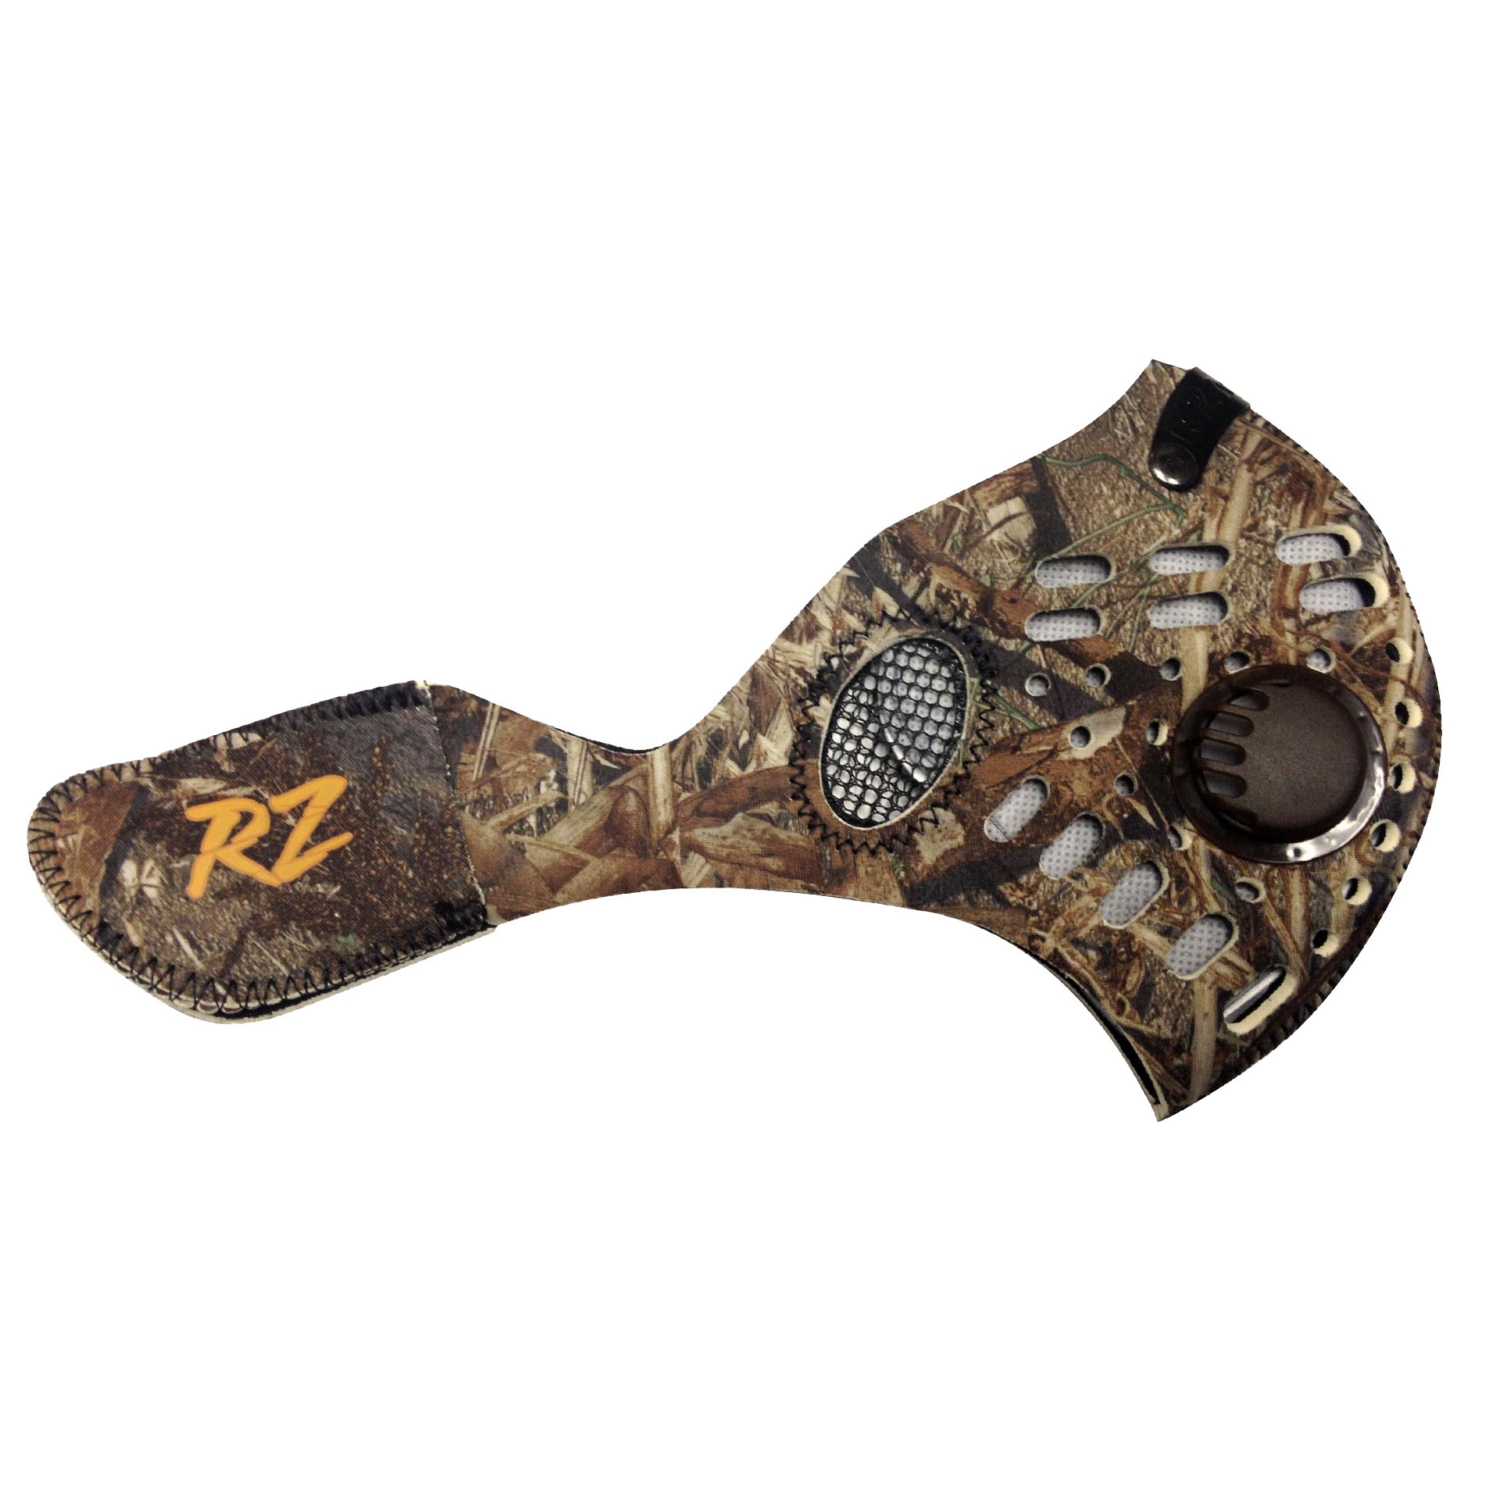 RZ MASK Duck Blind Mossy Oak Child M1 Face Mask by Rz Mask